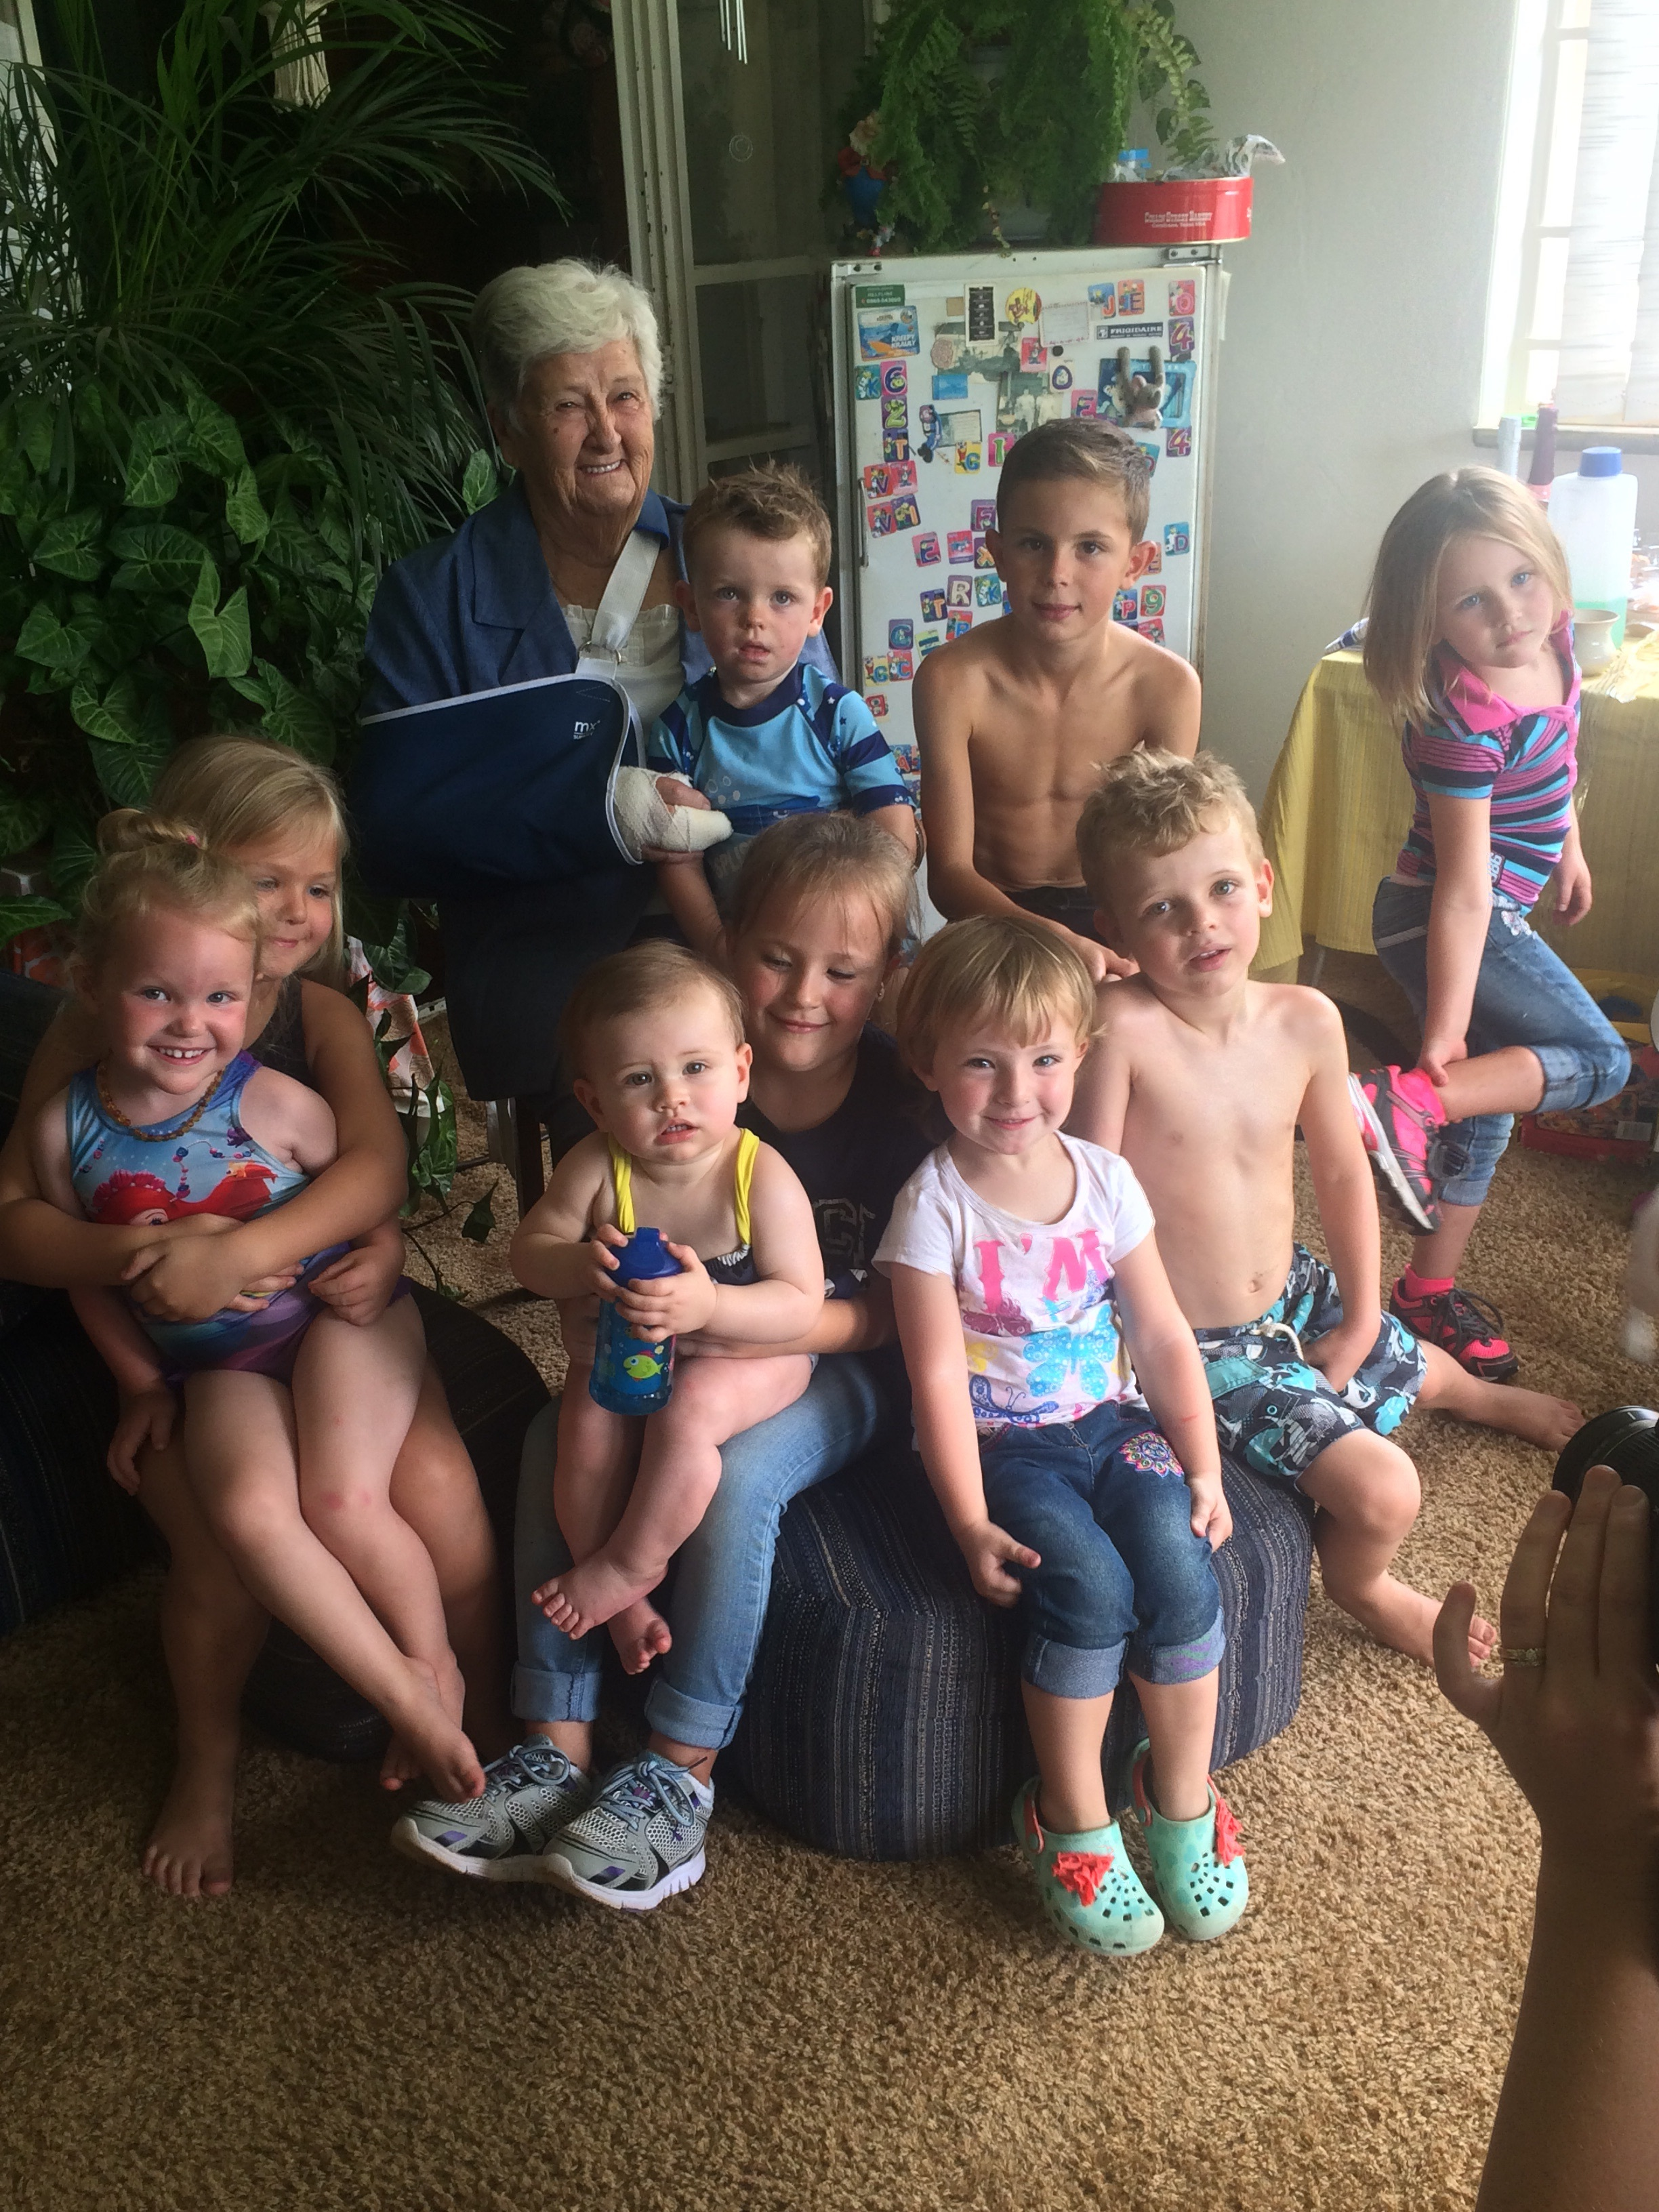 Gran with all of her grandkids!